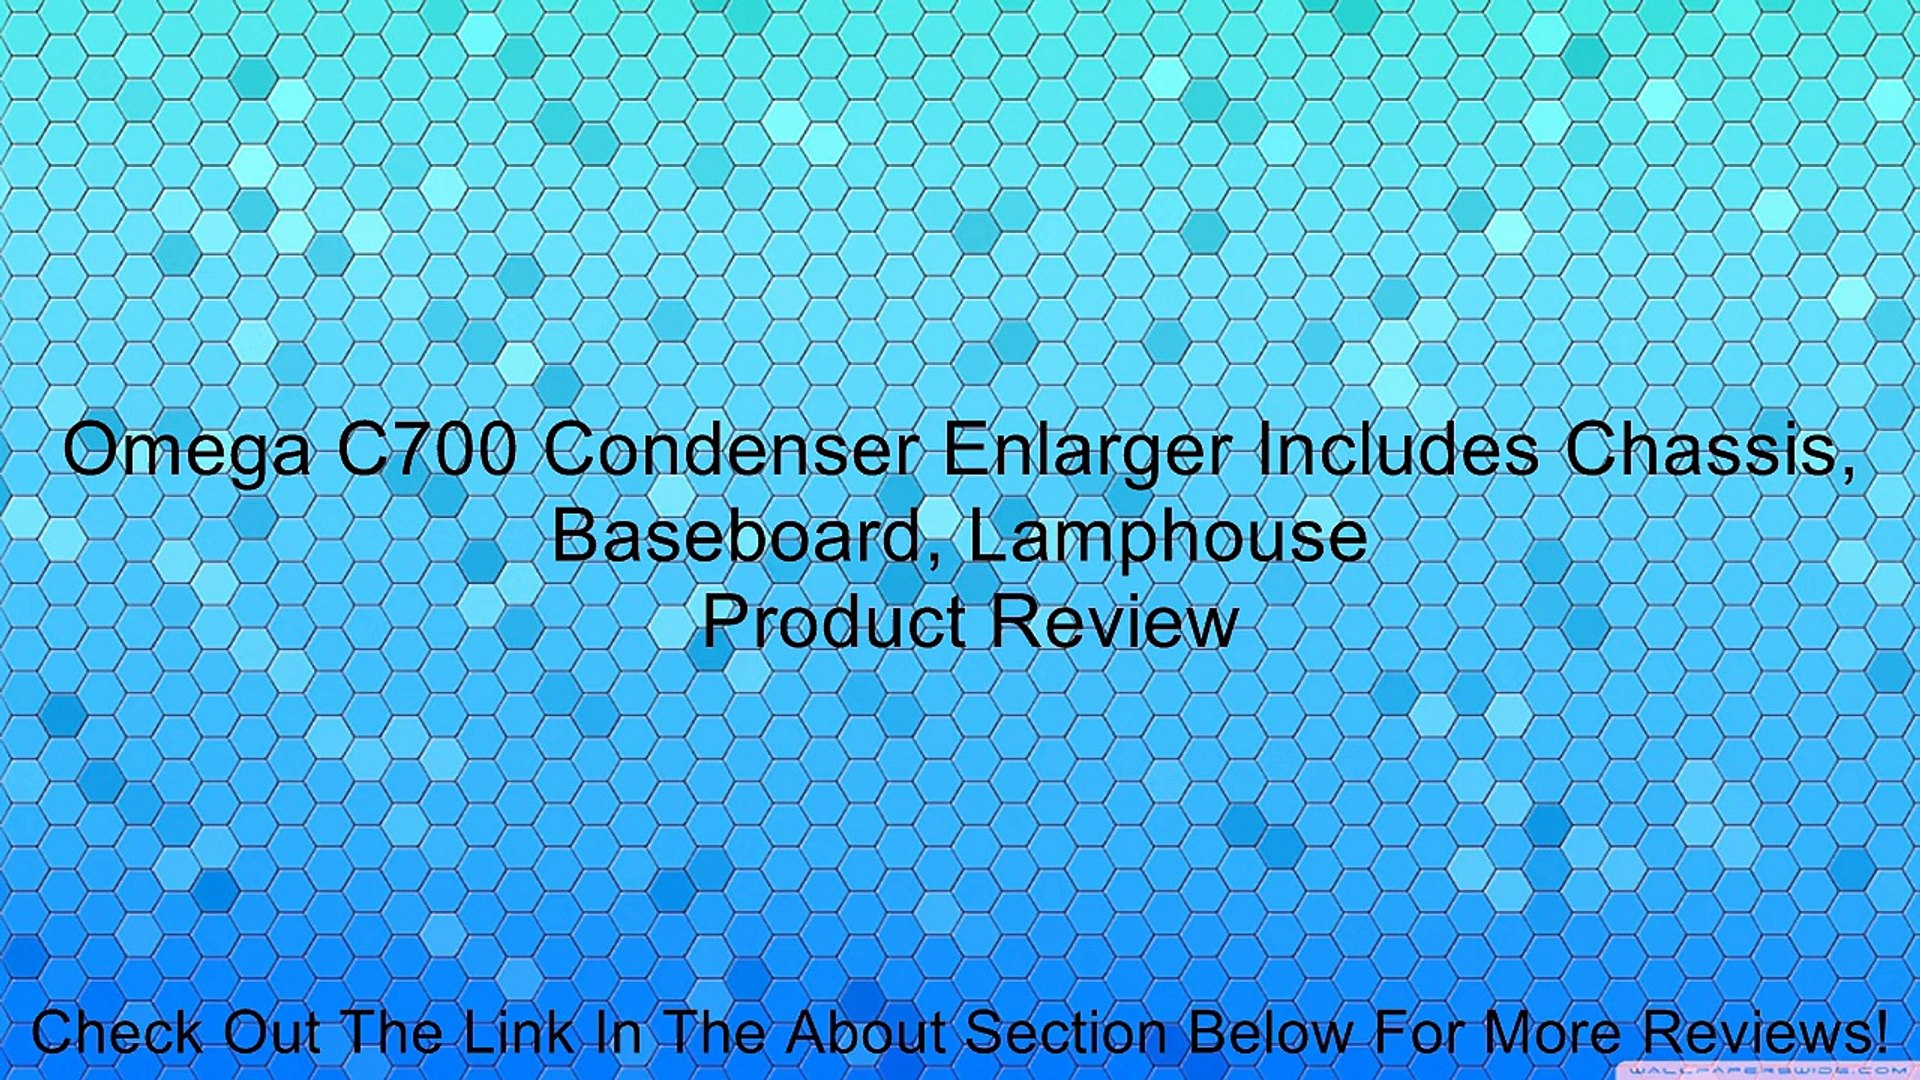 Omega C700 Condenser Enlarger Includes Chassis, Baseboard, Lamphouse Review